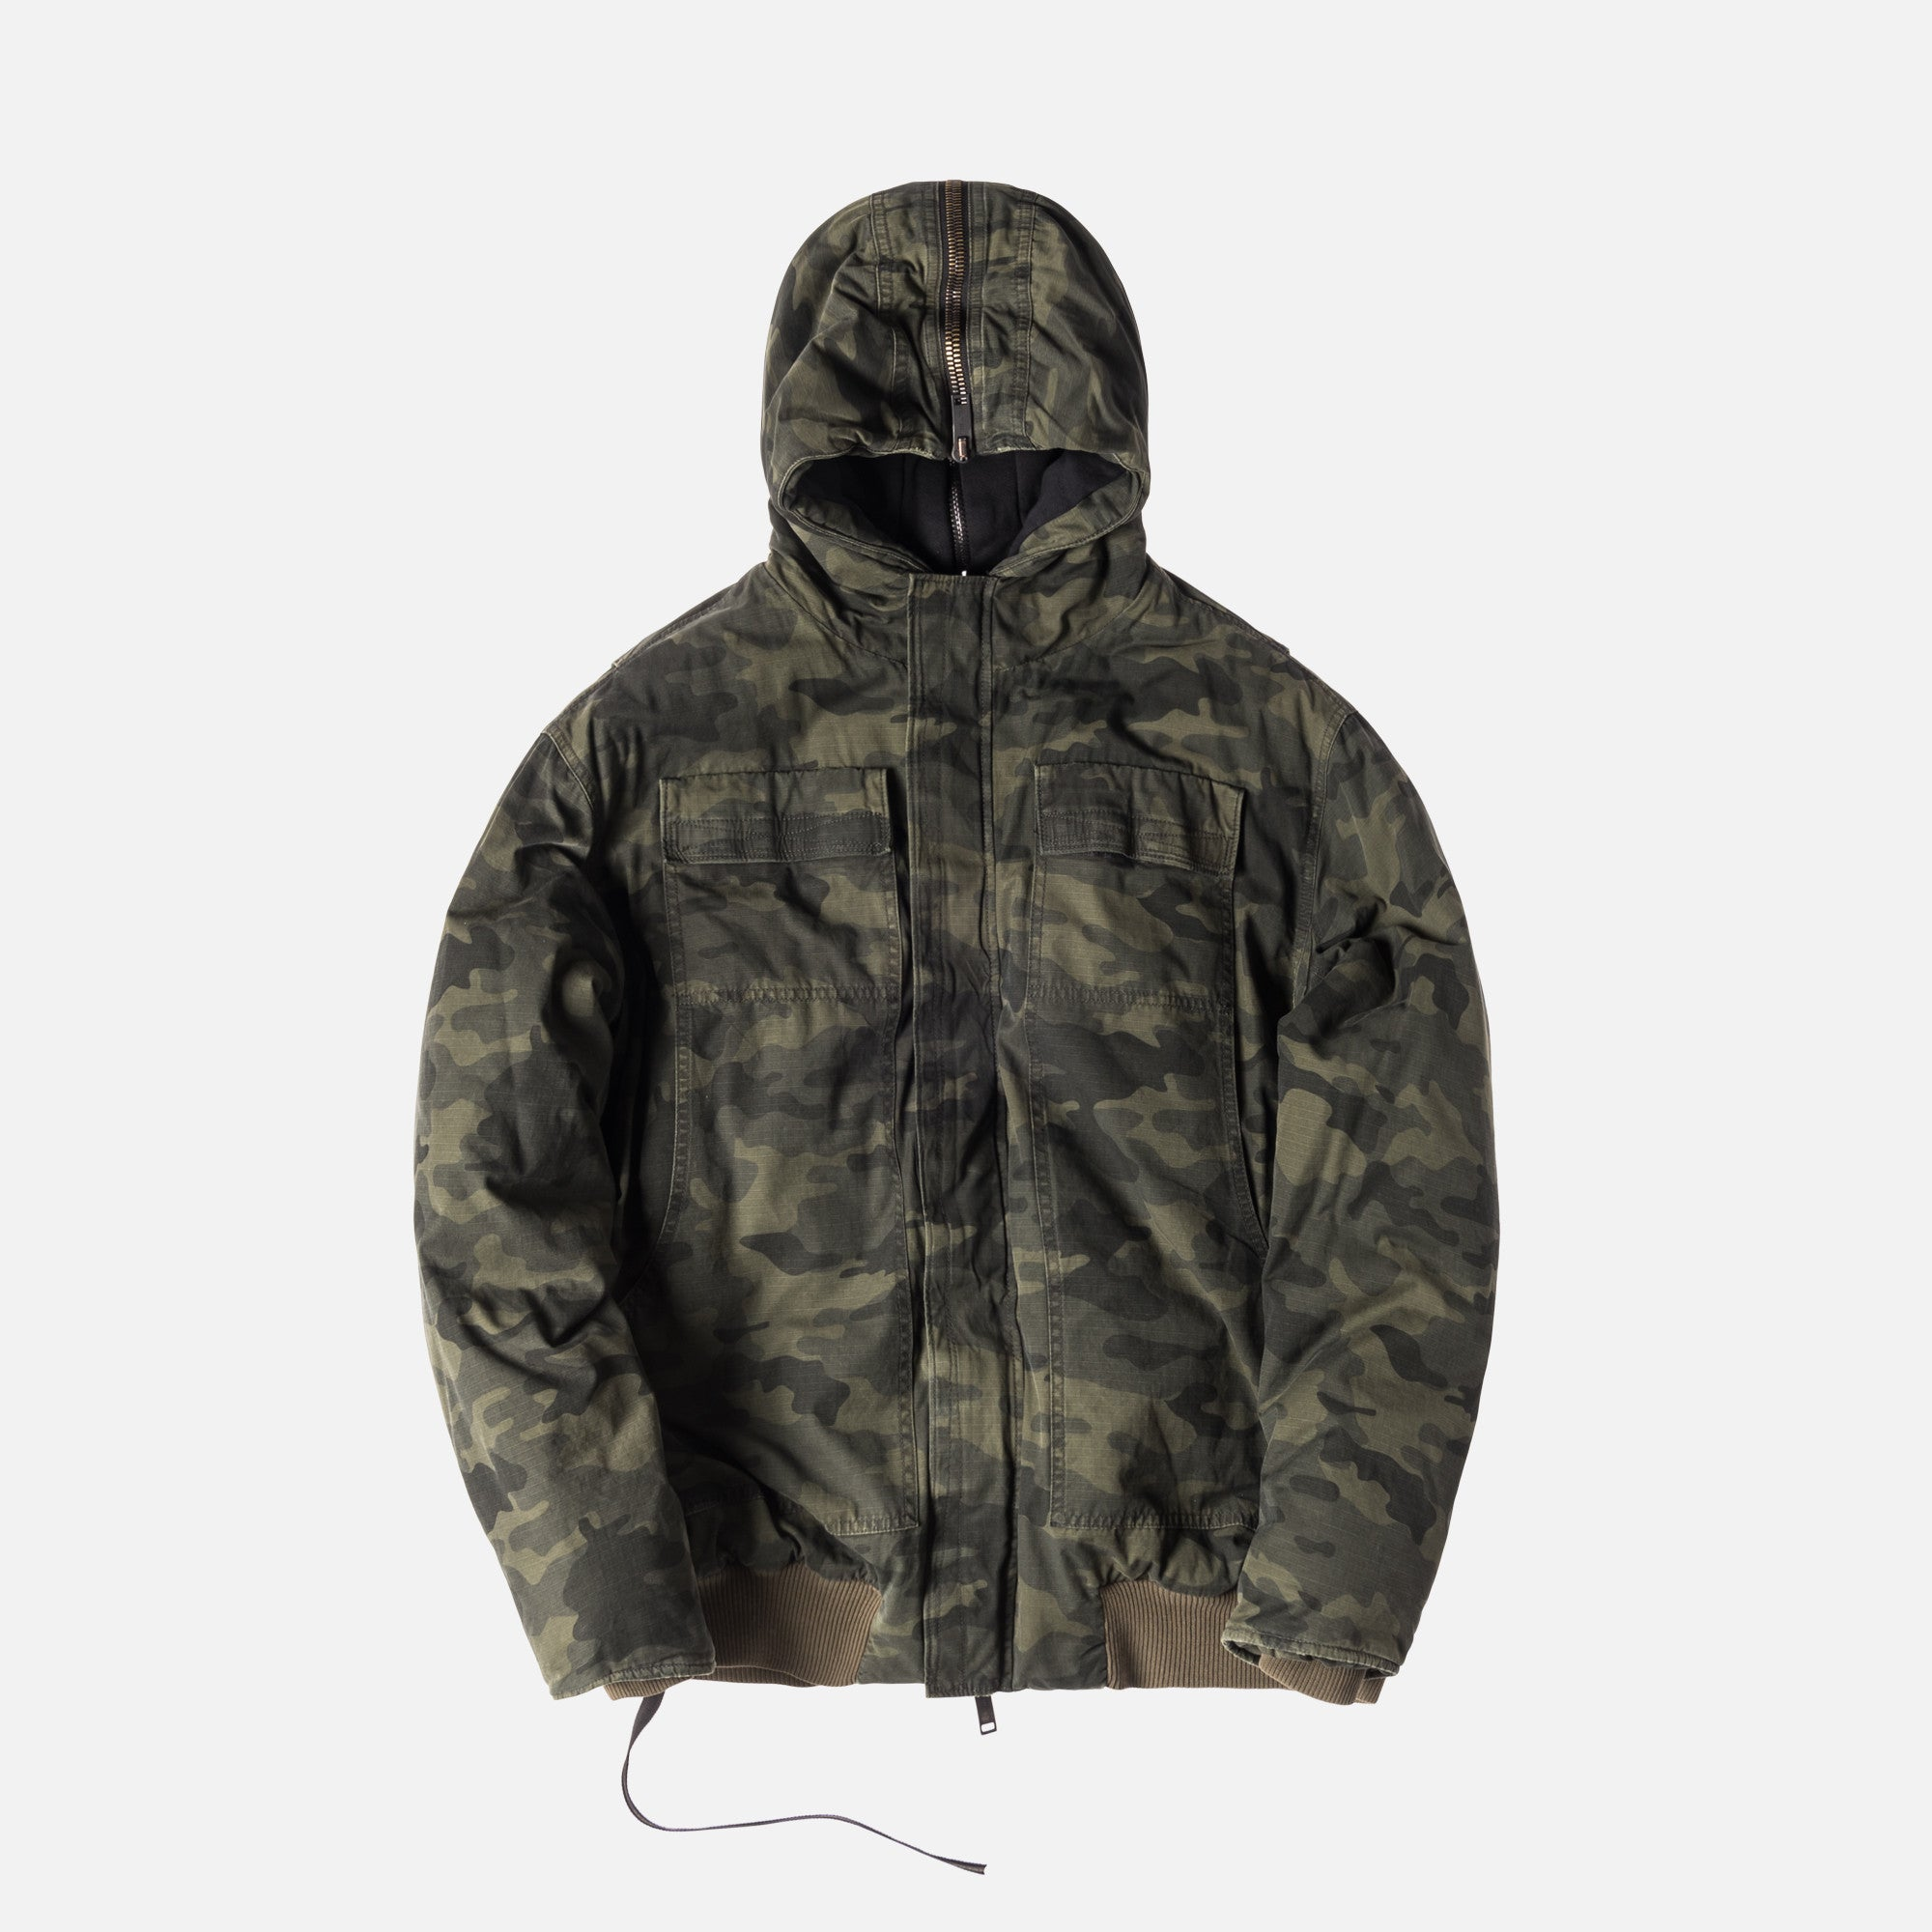 Unravel Project Kan Workman Jacket - Camo